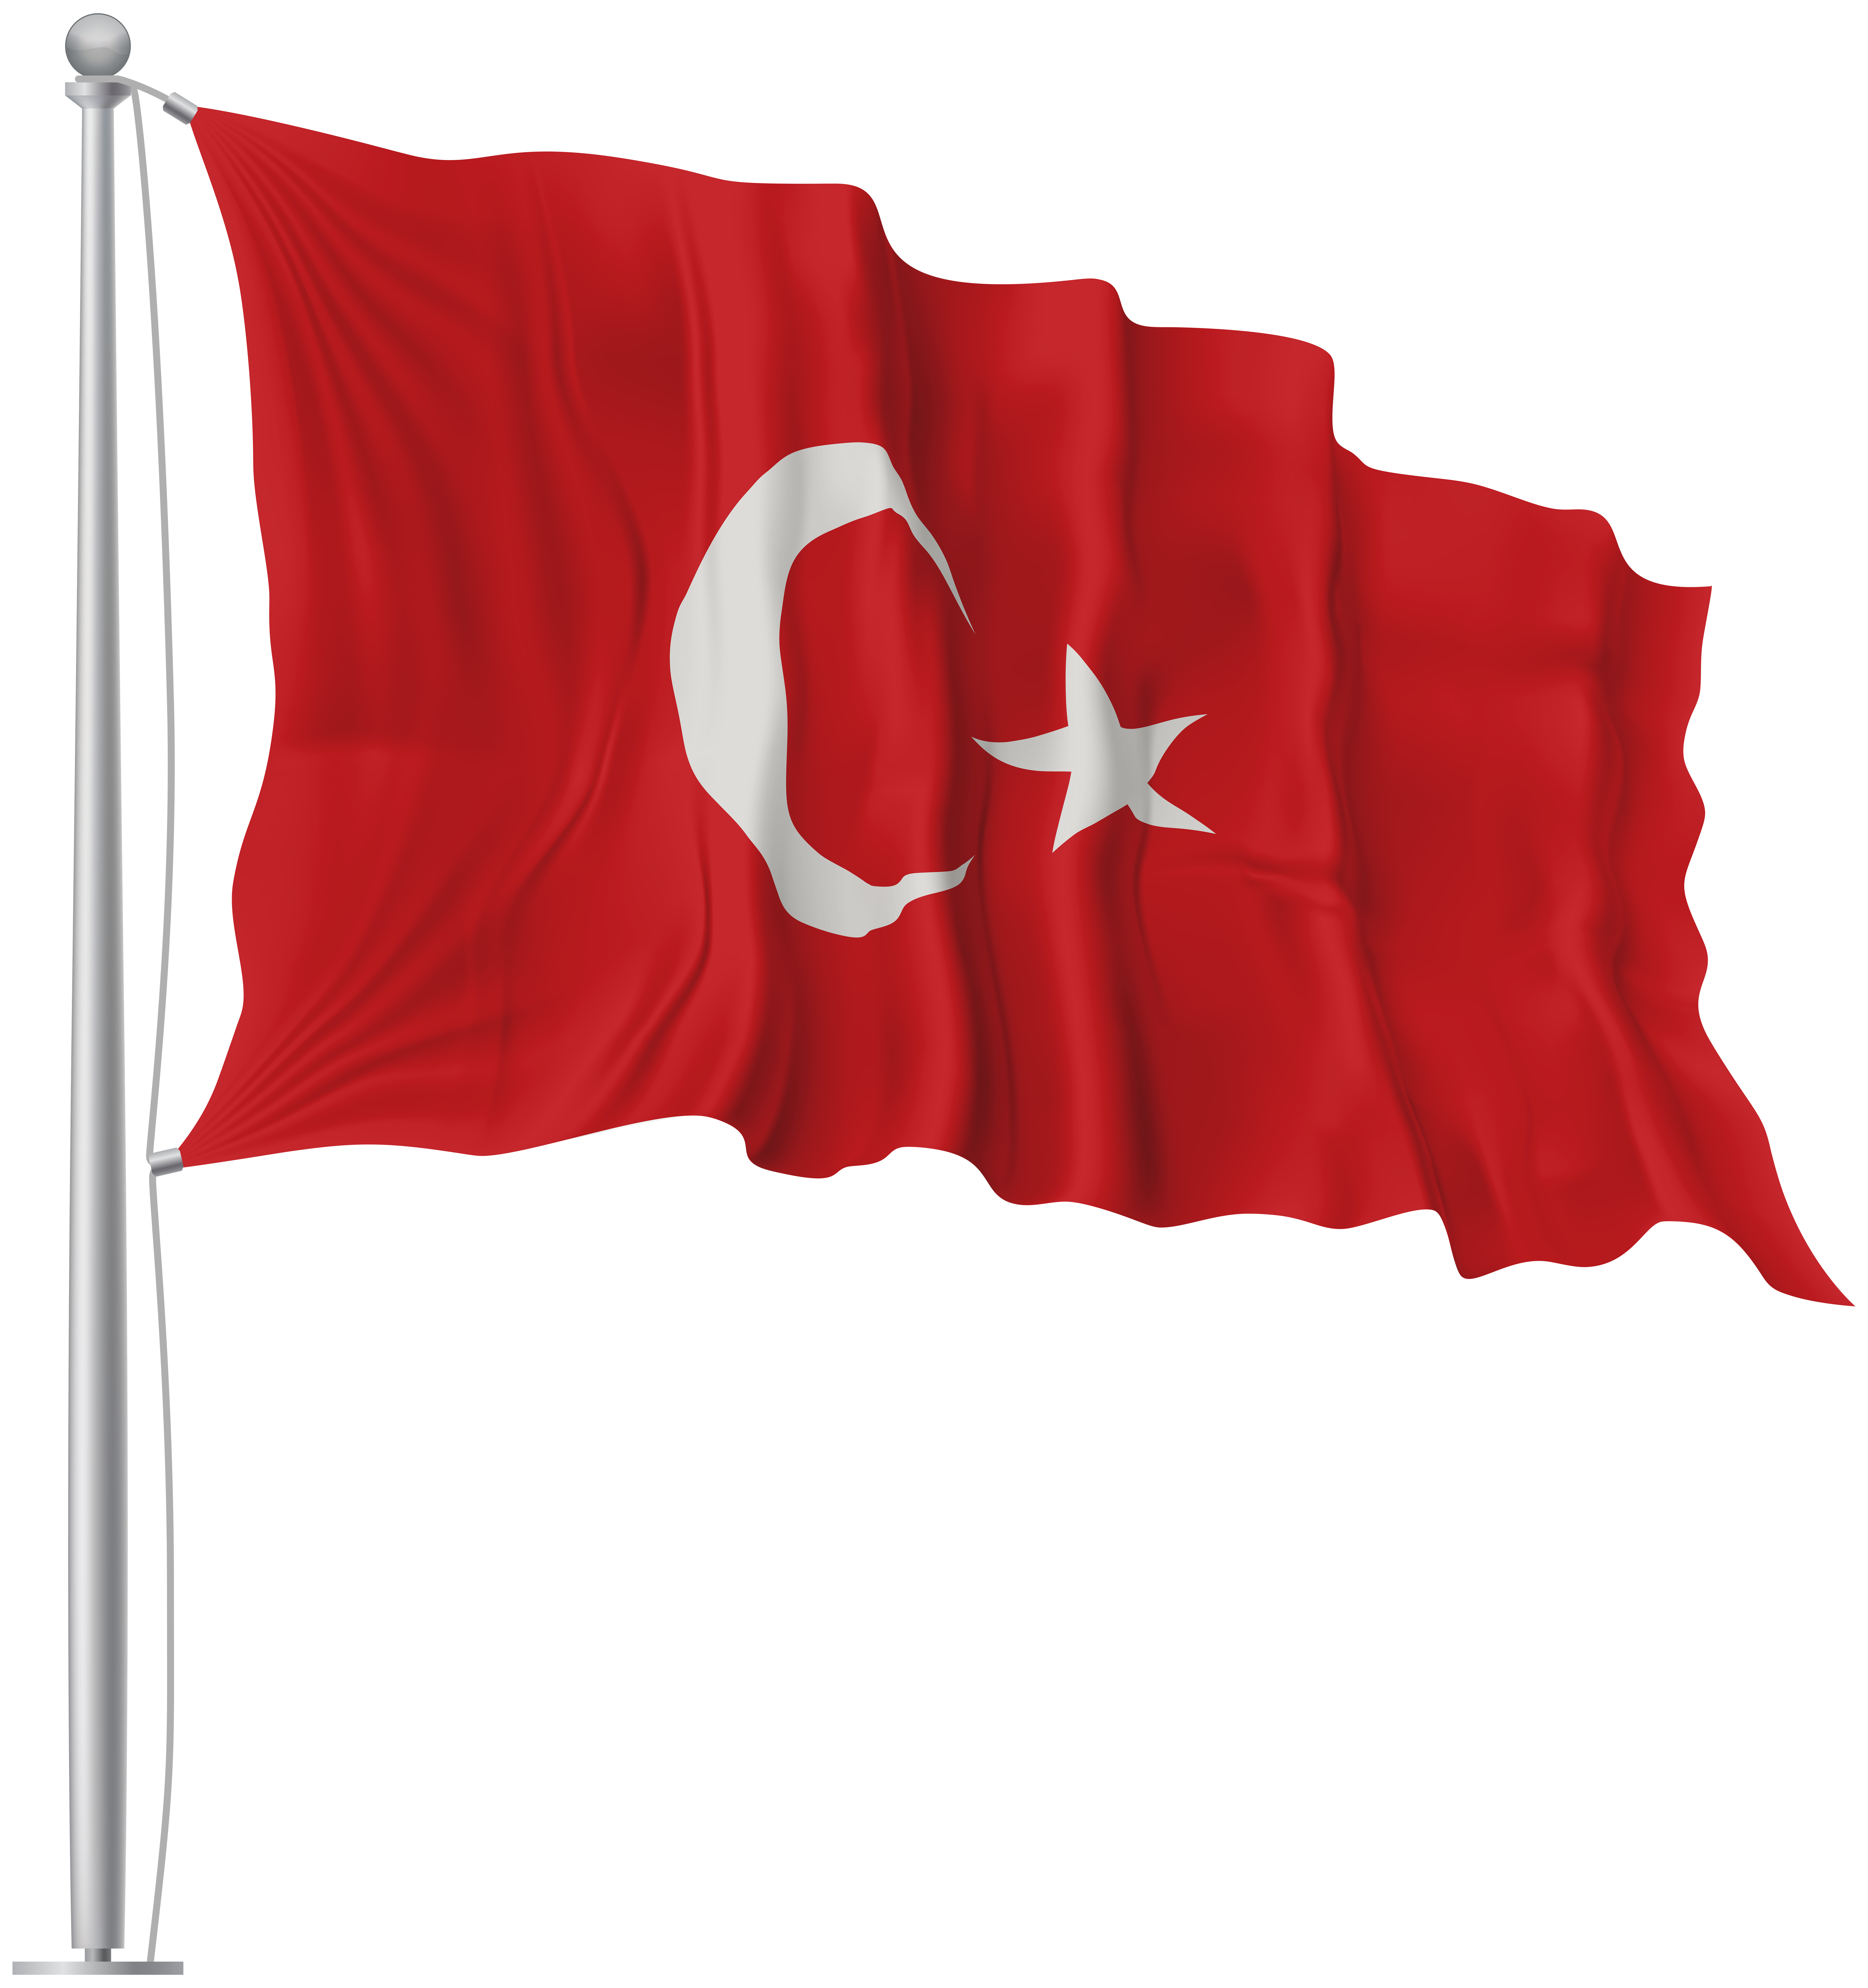 Clipart turkey banner. Waving flag png image